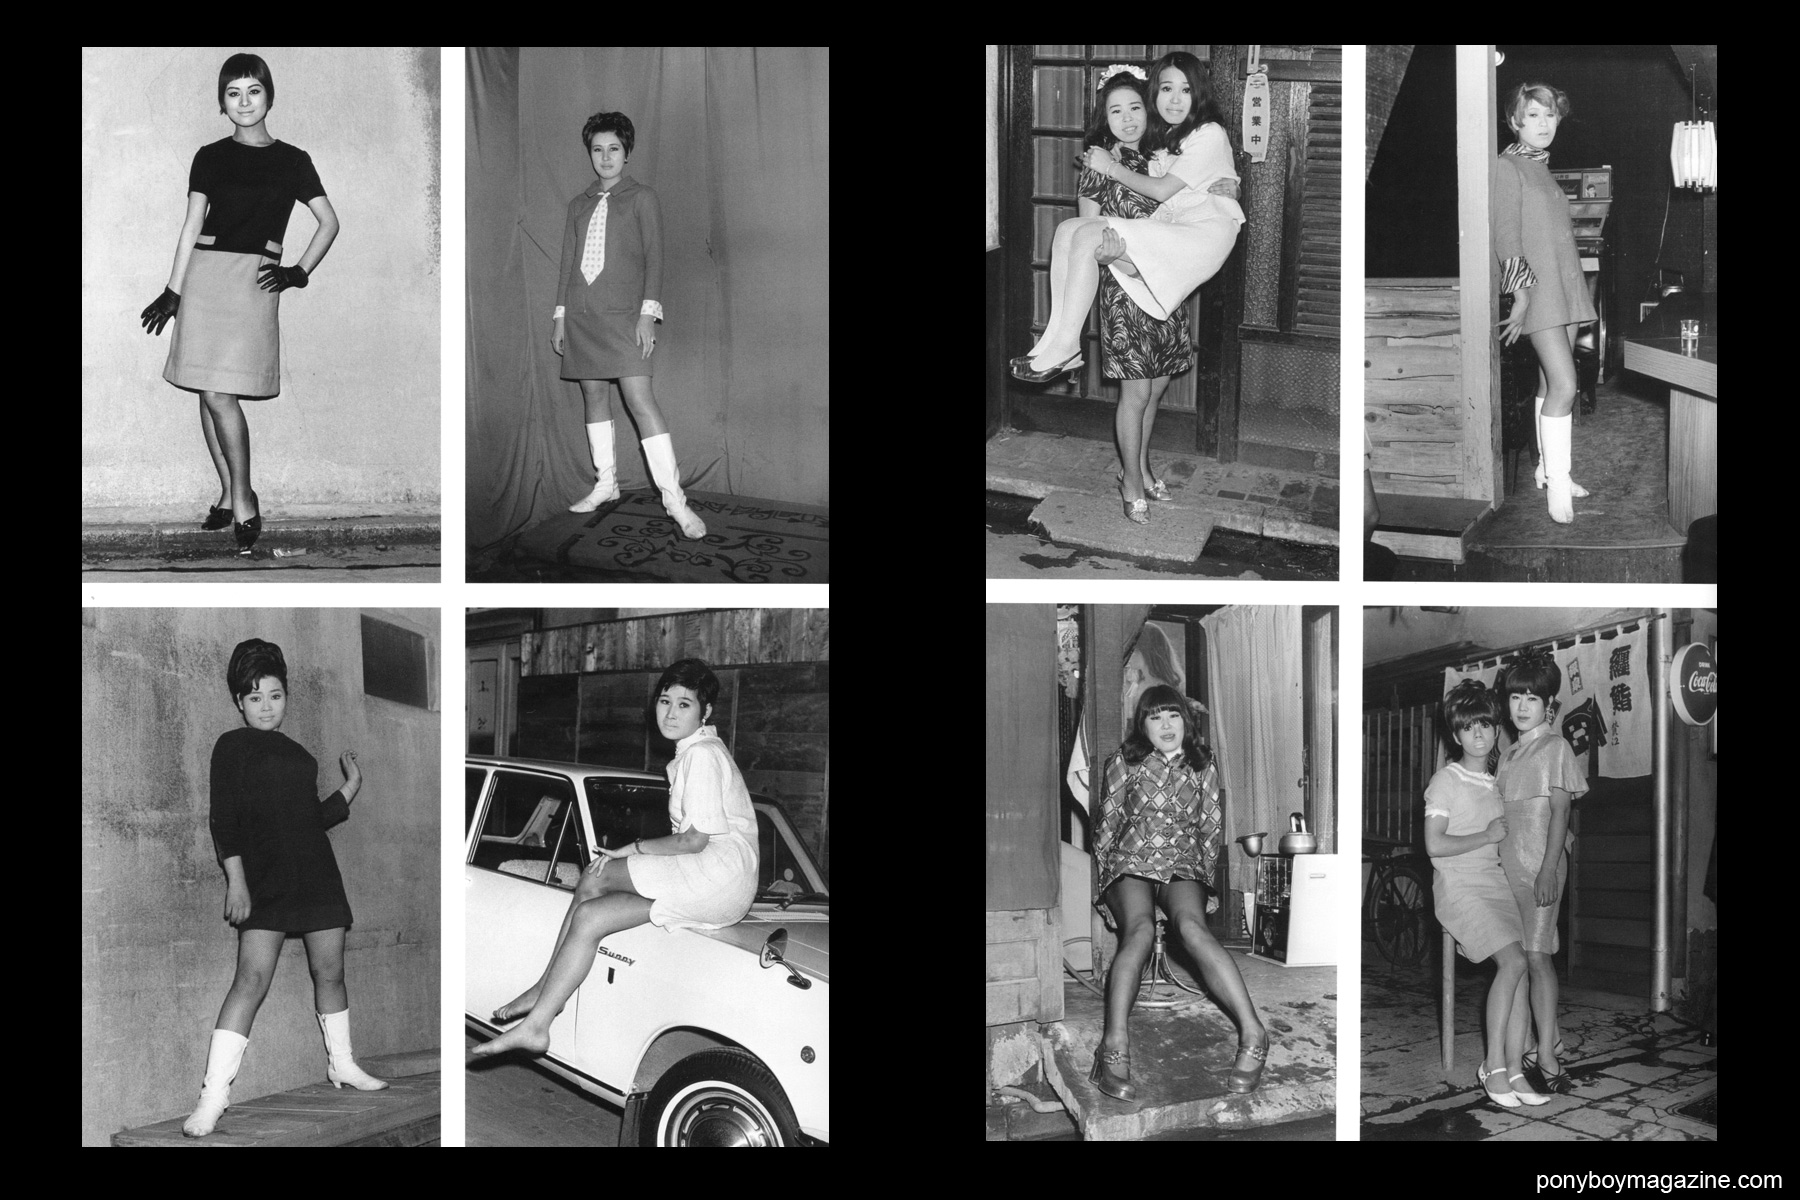 Japanese prostitutes and transvestites in 1960's Tokyo photographed by Watanabe Katsumi in the book Gangs of Kabukicho.